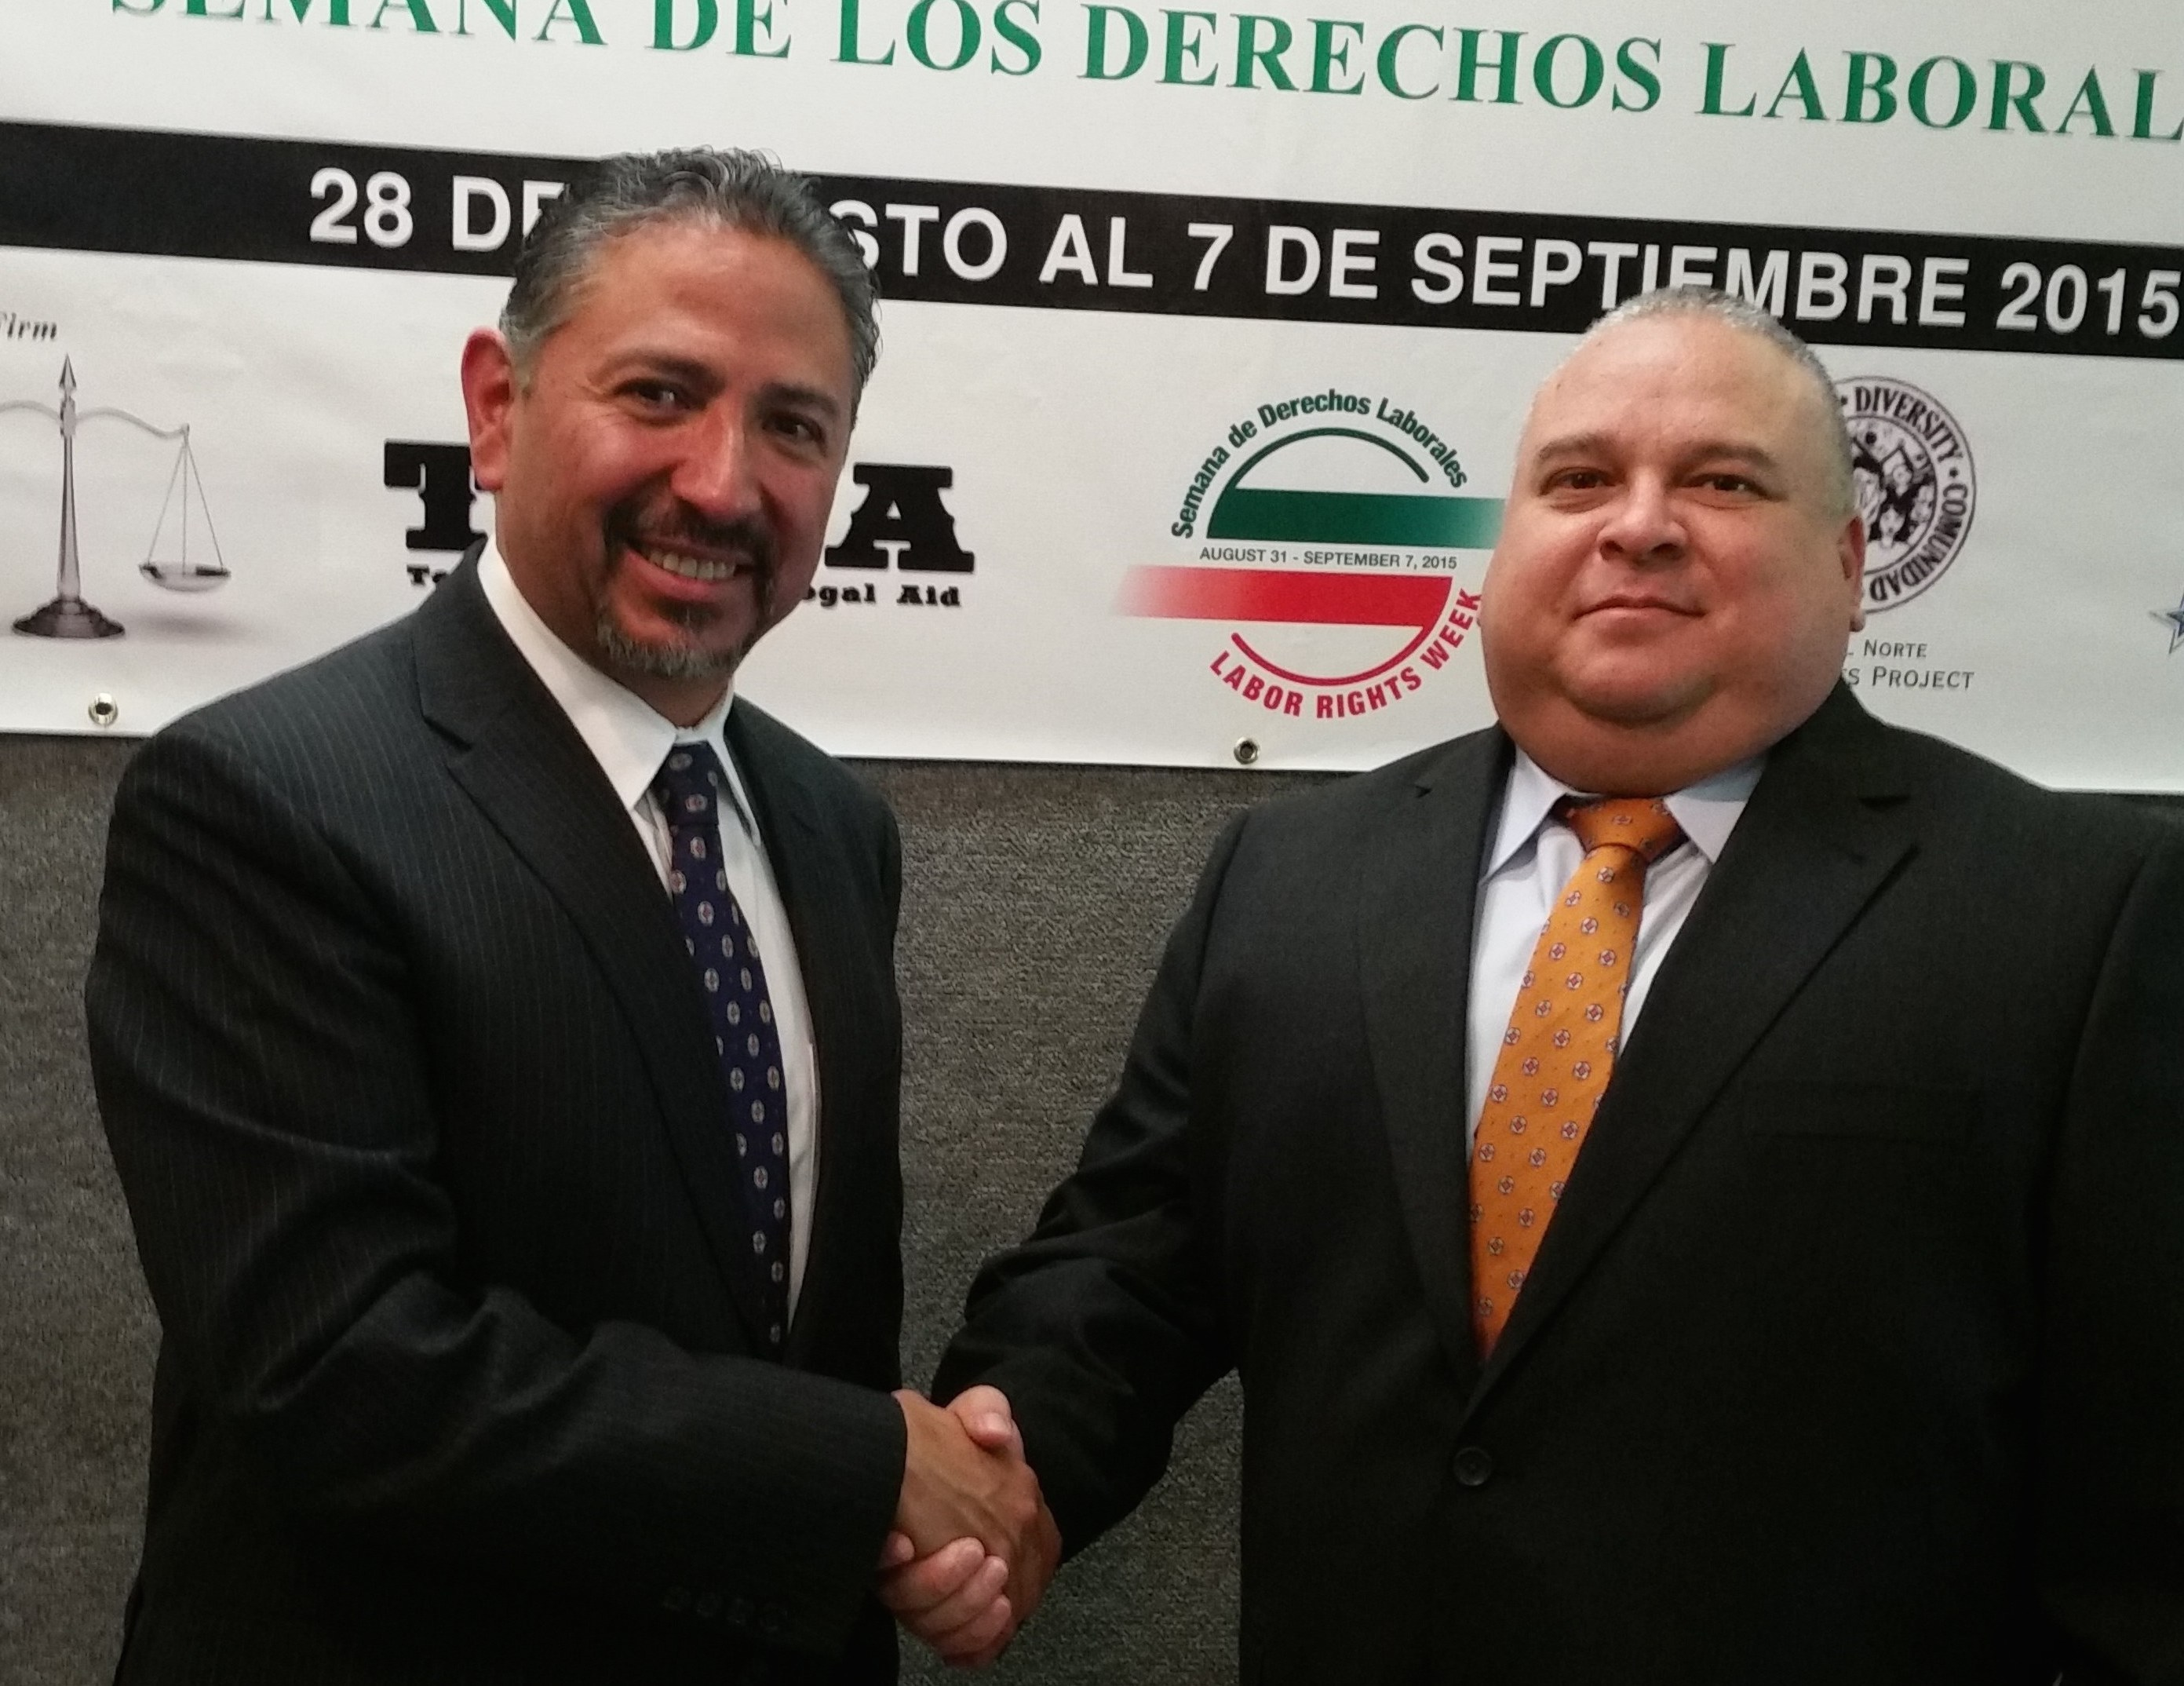 Jacob Prado Gonzalez (left) consul general for the Mexican Consulate in El Paso, Texas, signs alliance renewal with Diego Alvarado Jr. (right) area director in El Paso for the U.S. Department of Labor's Occupational Safety and Health Administration.